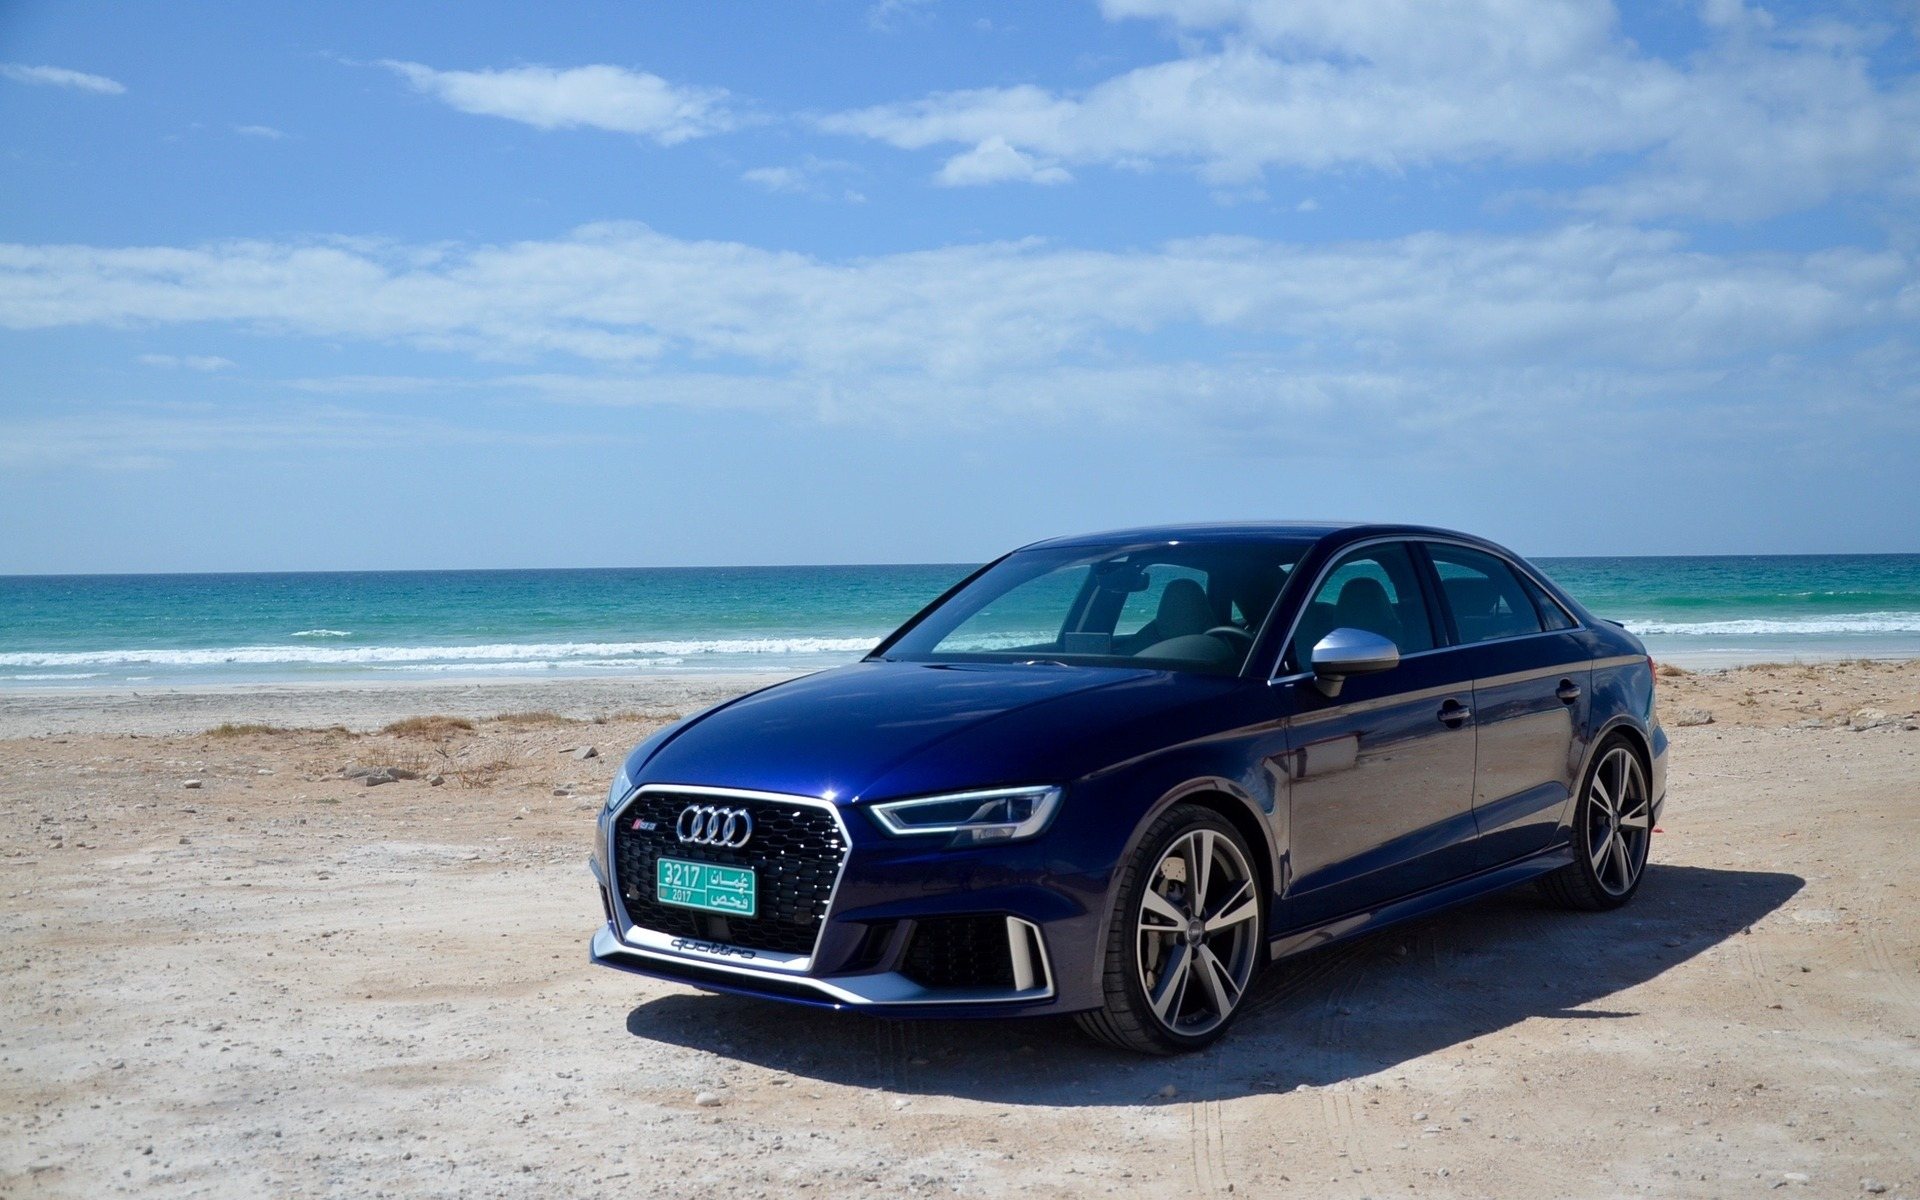 2018 Audi Rs 3 The Ultimate Sleeper 19 23